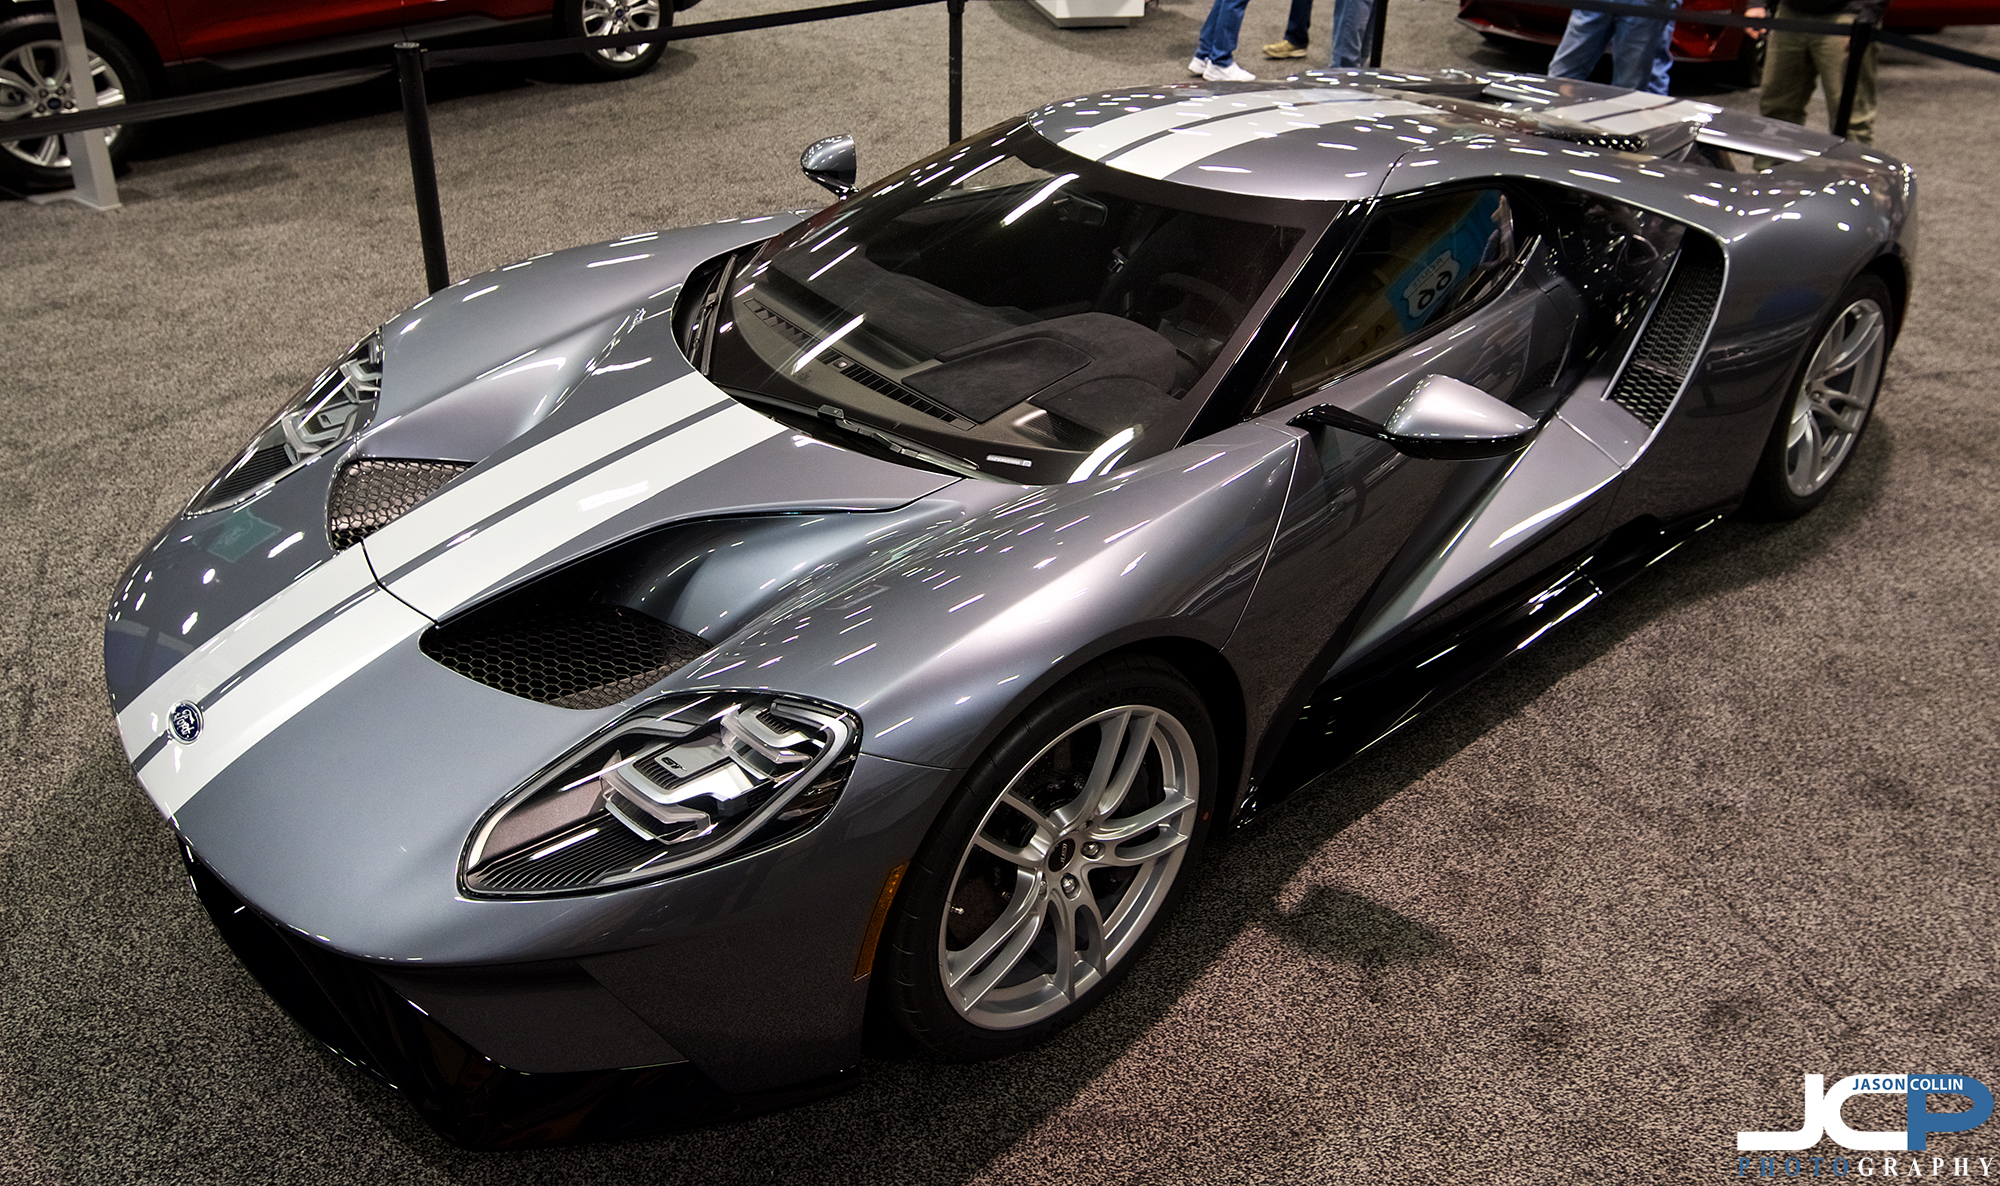 The 2017 Ford GT has a lot of presence, even on carpet under fluorescent lights at the 2018 New Mexico Auto Show